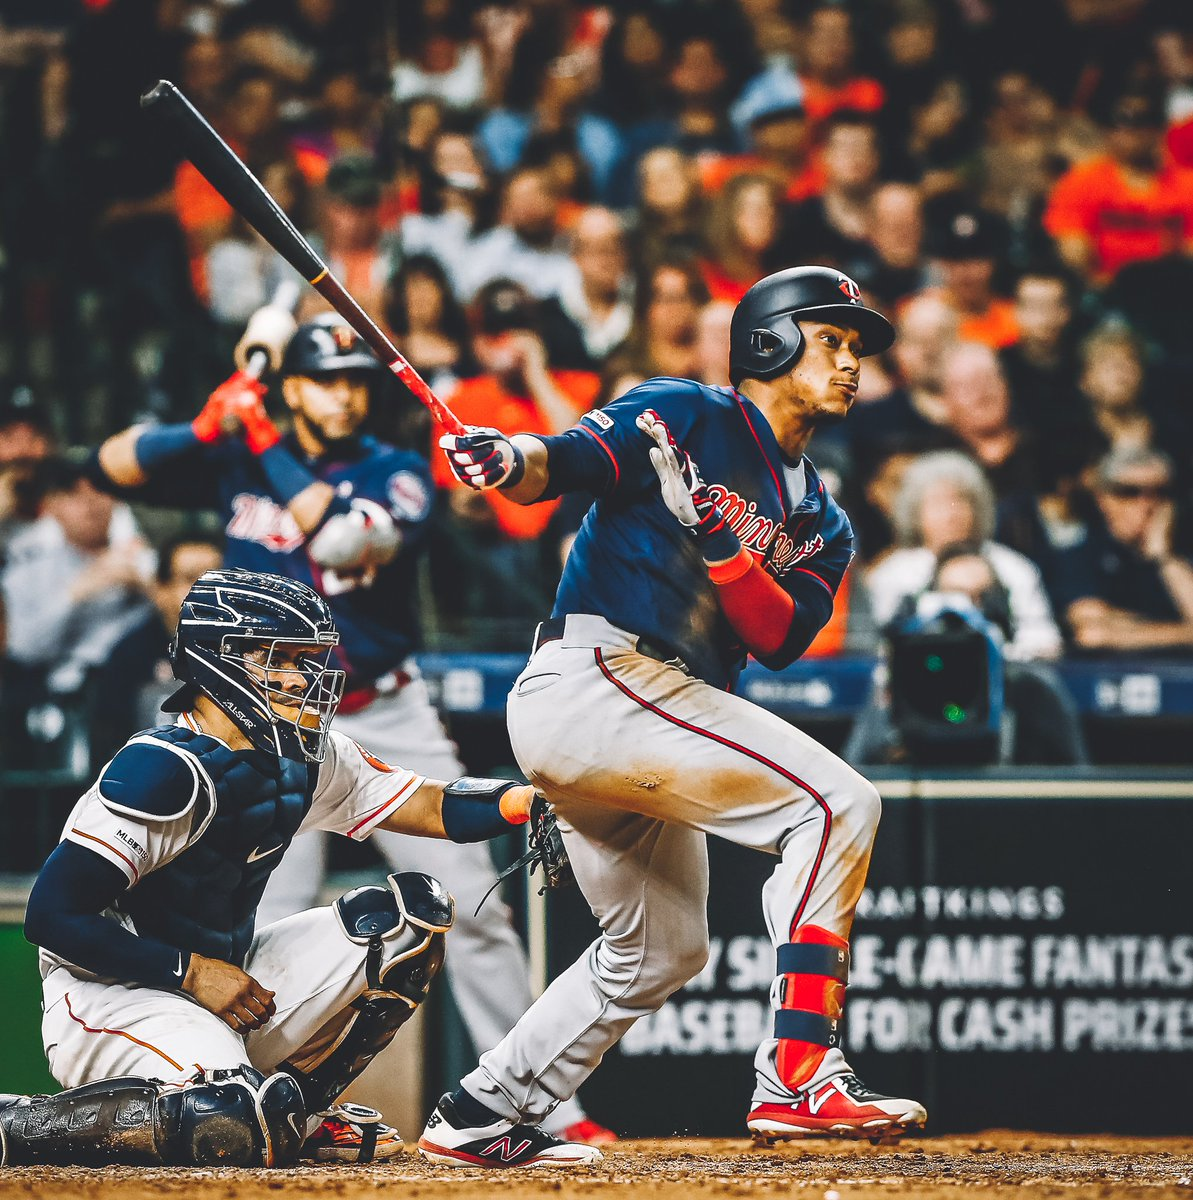 When you want to keep pace among the AL leaders in batting average, you do this at the plate:   4-for-5 4 RBI 2 runs 2B, HR  #TwinsWin #MNTwins  <br>http://pic.twitter.com/ewKxxDliyt